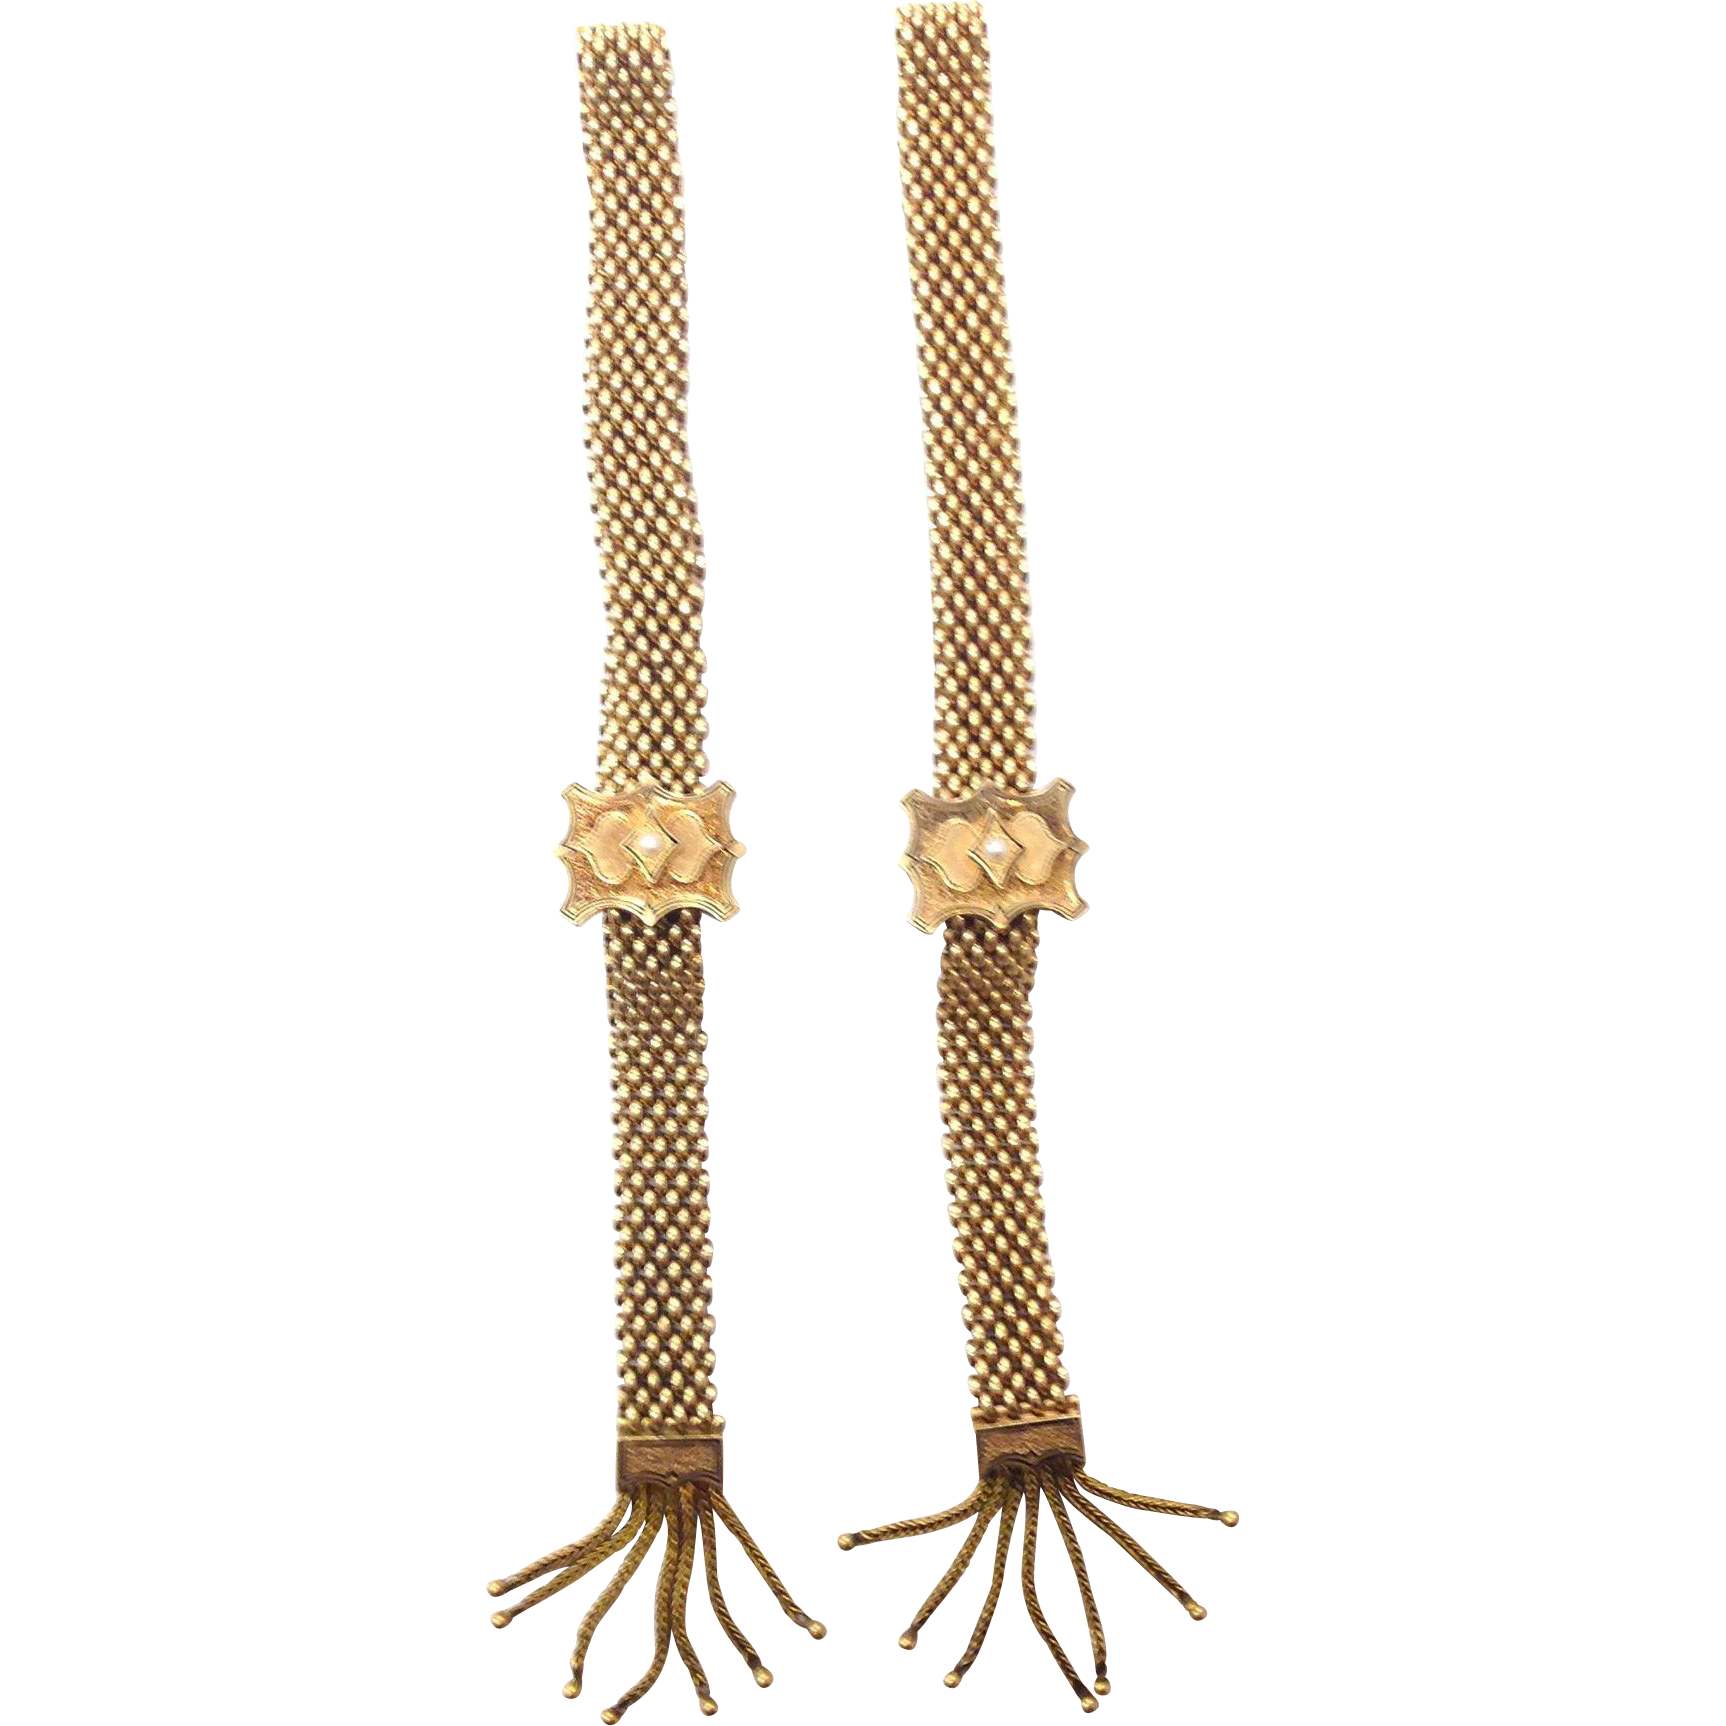 Solid 14k yellow Victorian Slider bracelets with Enamel, Seed Pearls, and fringe